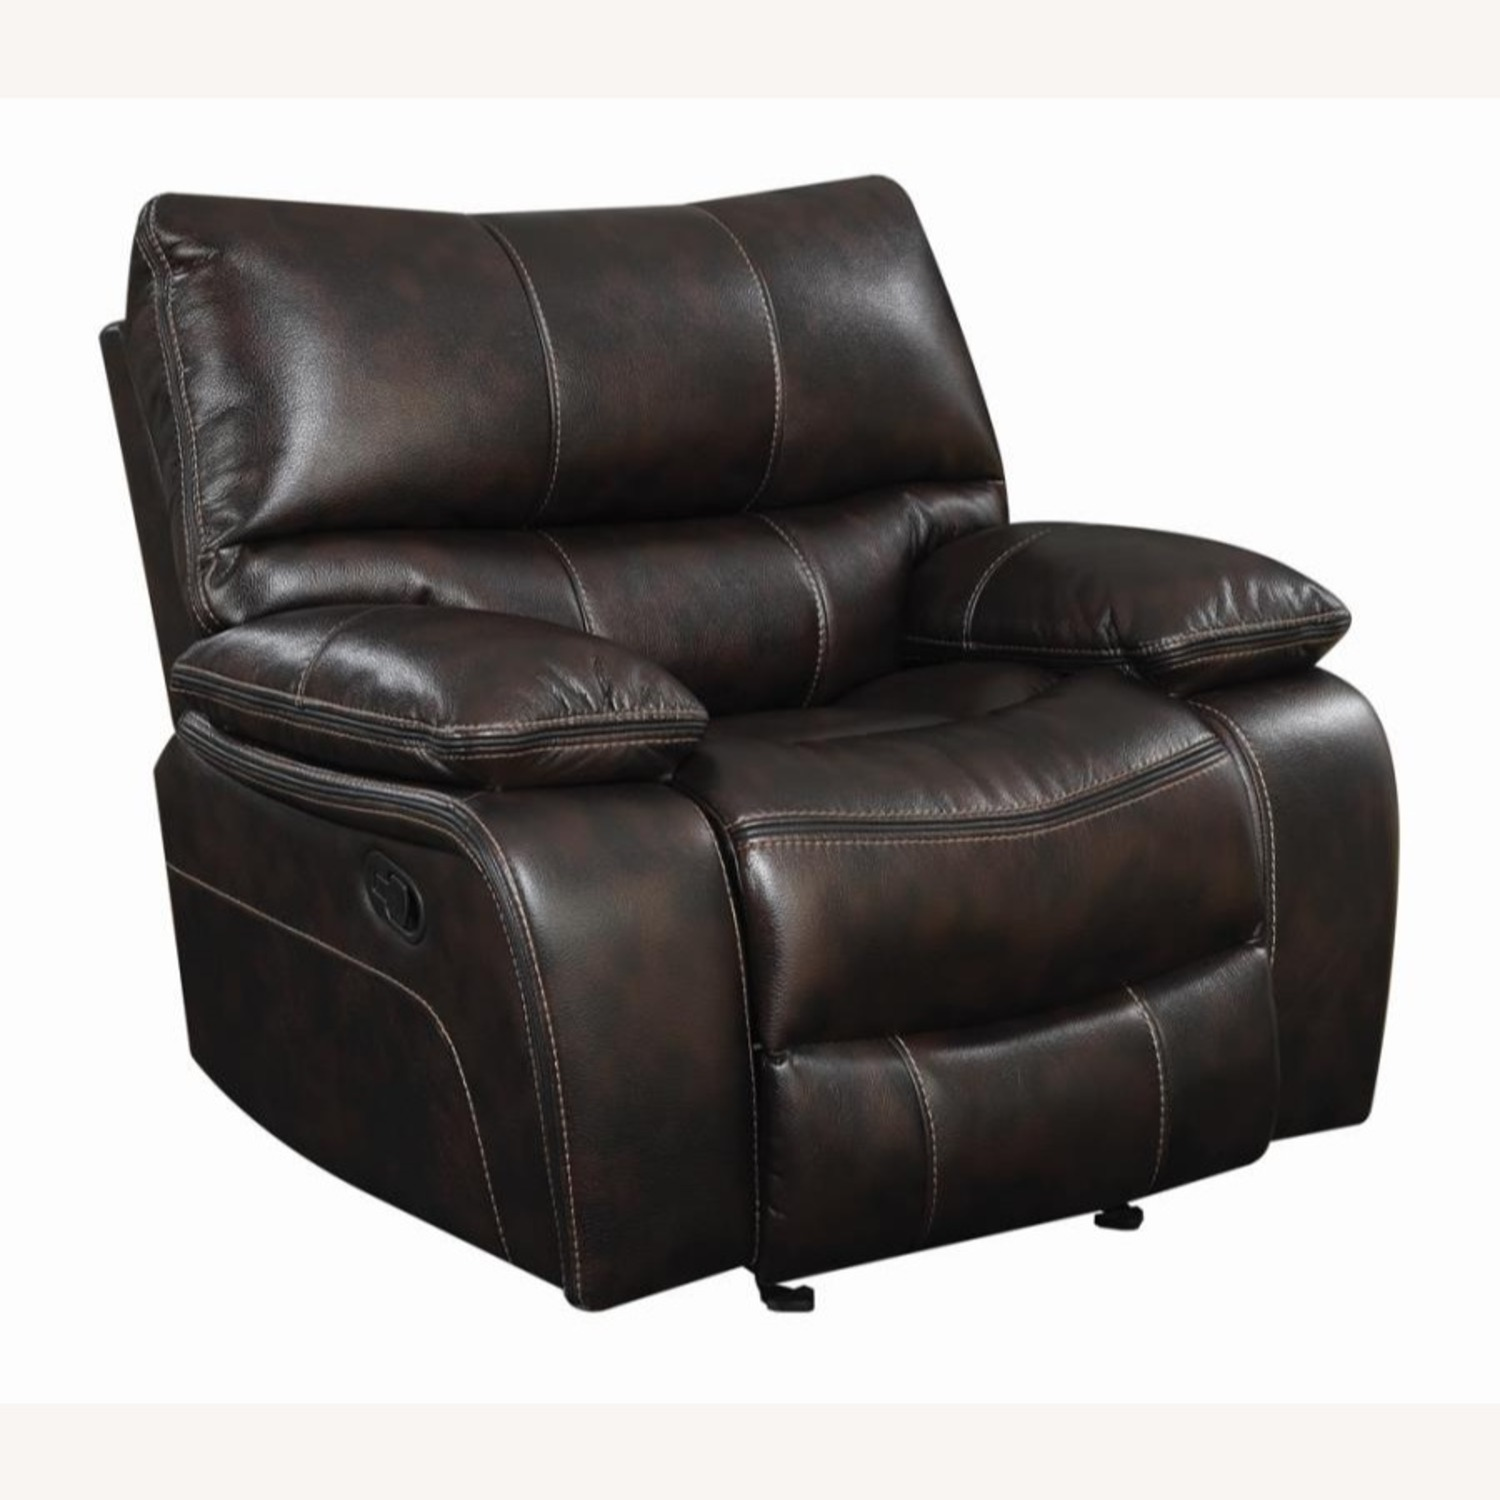 Glider Recliner W/ Scooped Seating In Dark Brown - image-4